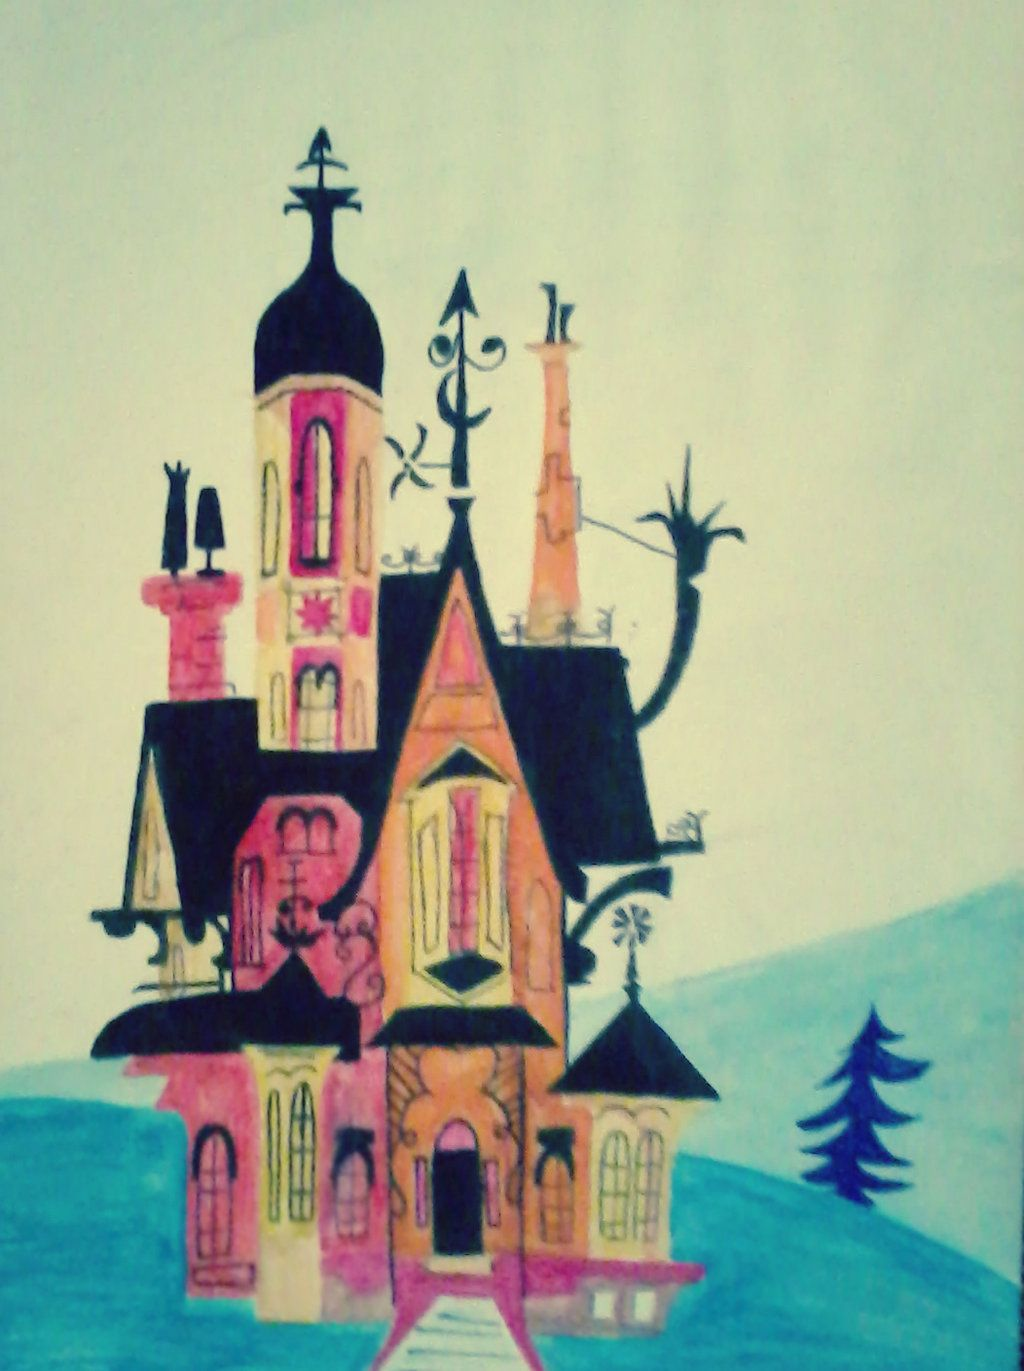 Foster S Home House Fosters Home For Imaginary Friends House Wallpaper Foster S Home For Foster Home For Imaginary Friends Home Wallpaper Imaginary Friend